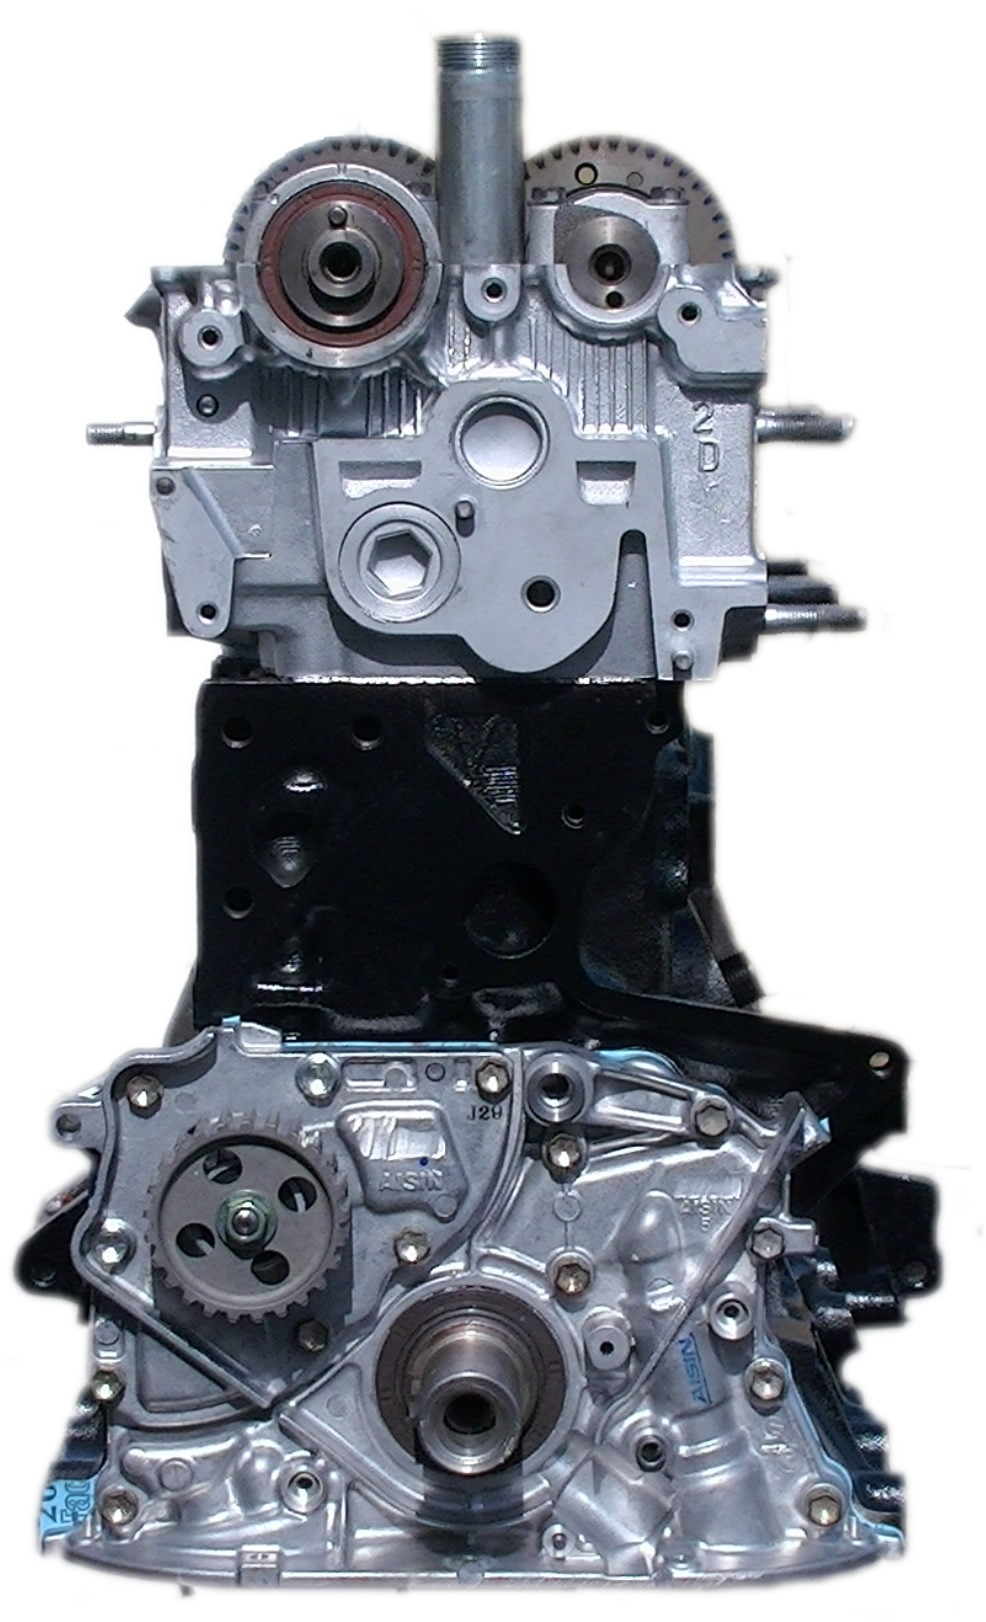 camry 5s-fe engine